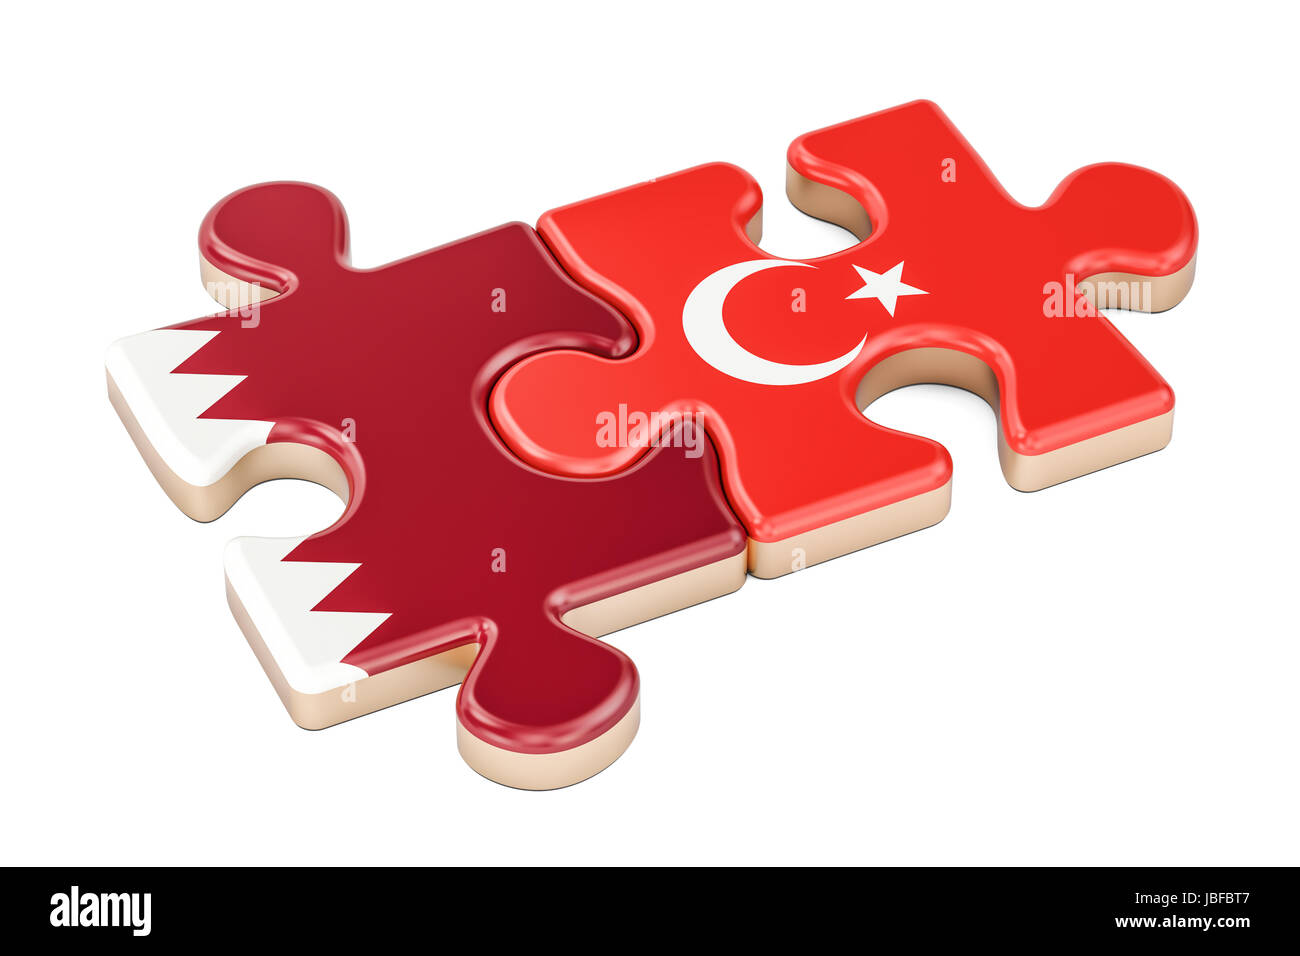 Uncategorized Turkey Puzzles qatar and turkey puzzles from flags 3d rendering isolated on white background